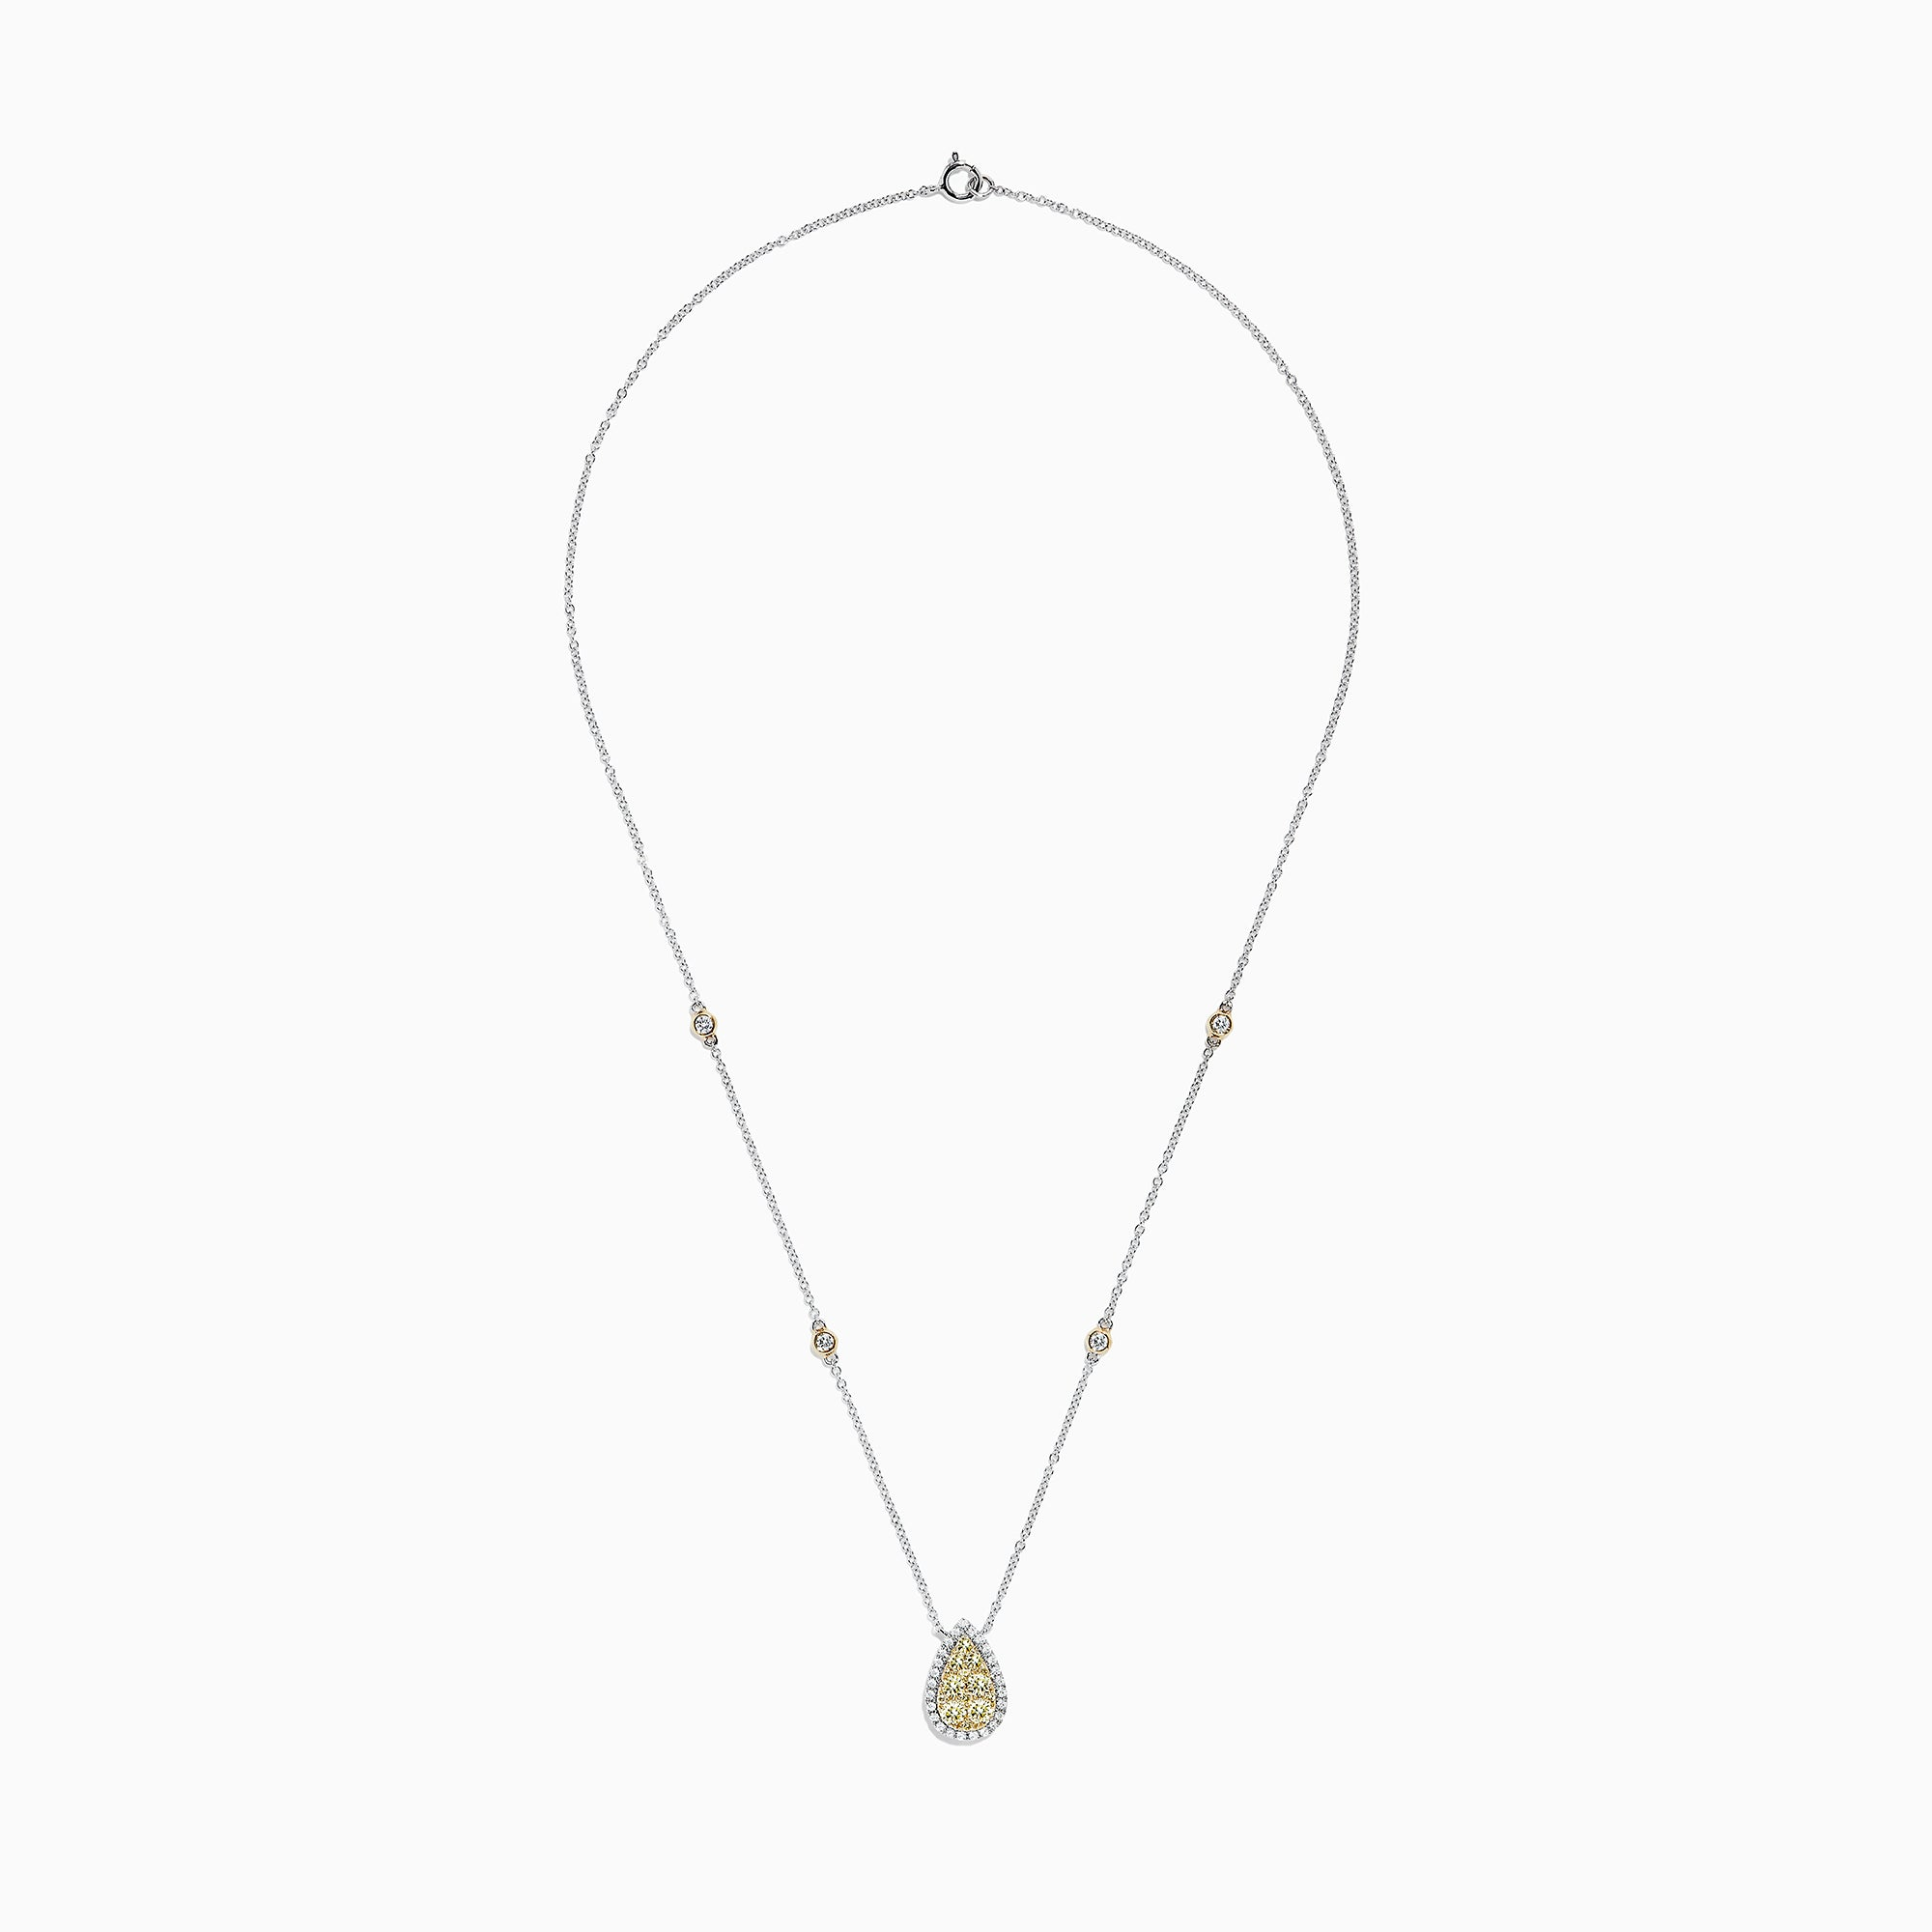 Effy Canare 14K Two Tone Gold Yellow and White Diamond Necklace, 1.09 TCW